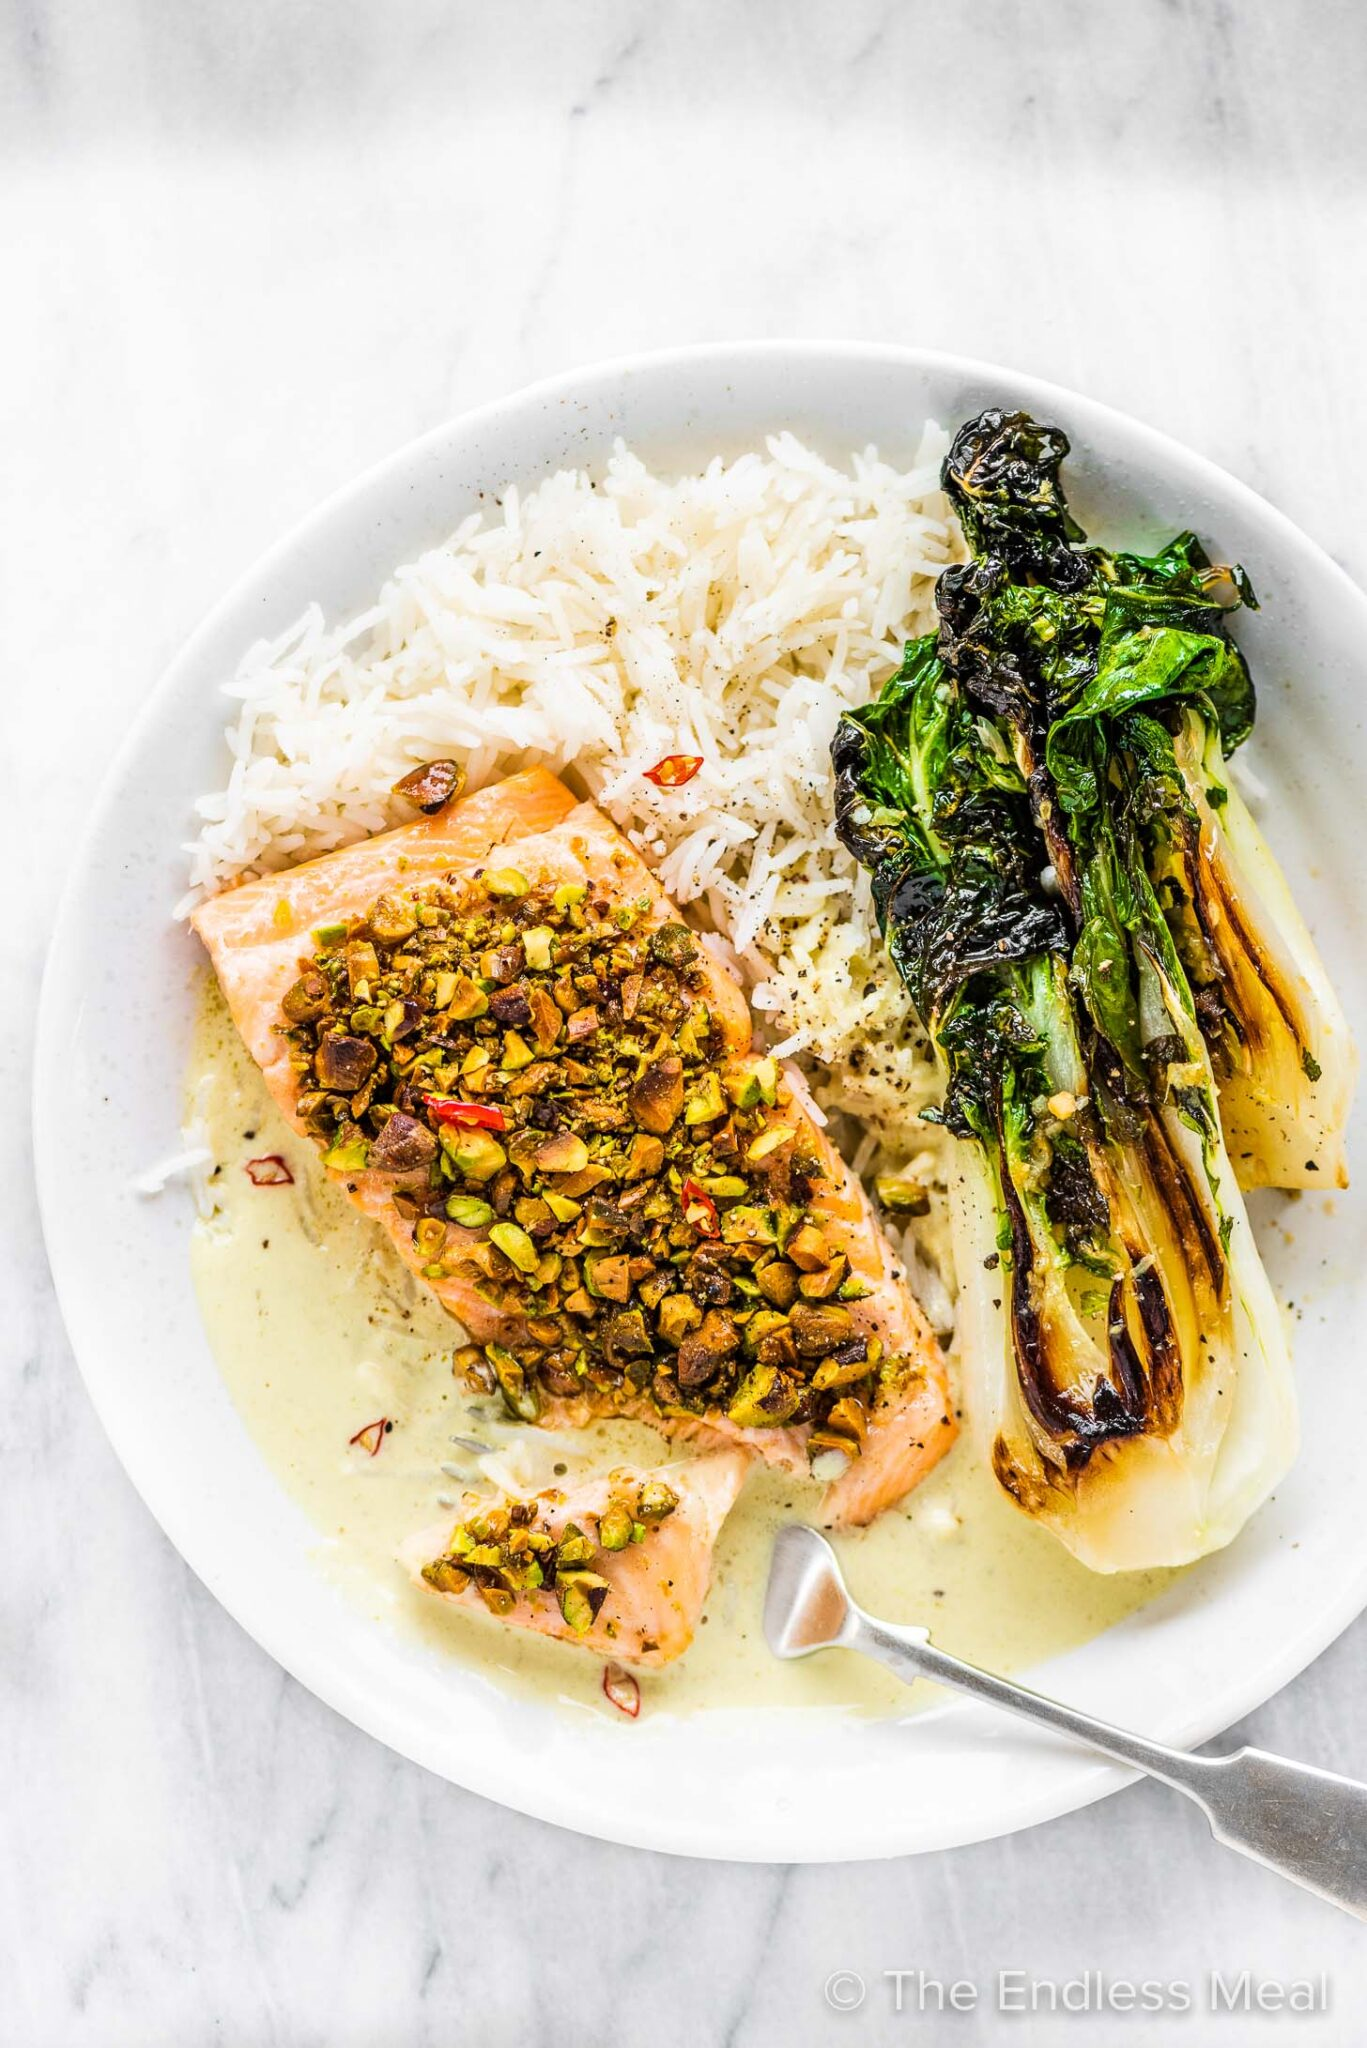 Pistachio salmon on a white plate with rice and bok choy.